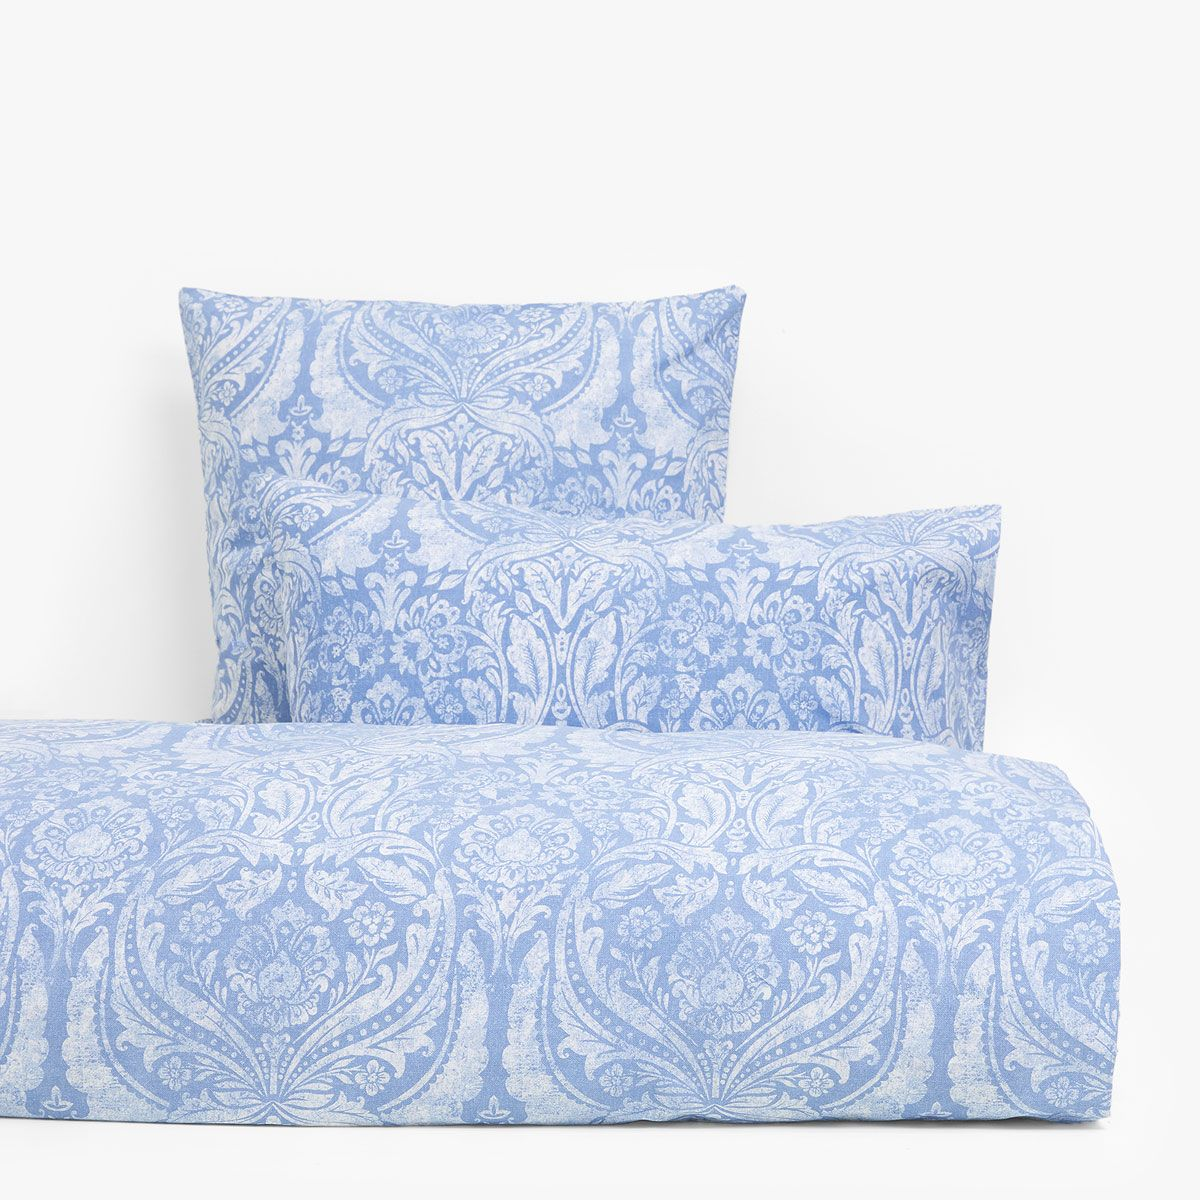 Erwin Müller Bettwäsche Sale Multicoloured Paisley Print Duvet Cover Zara Home Norge